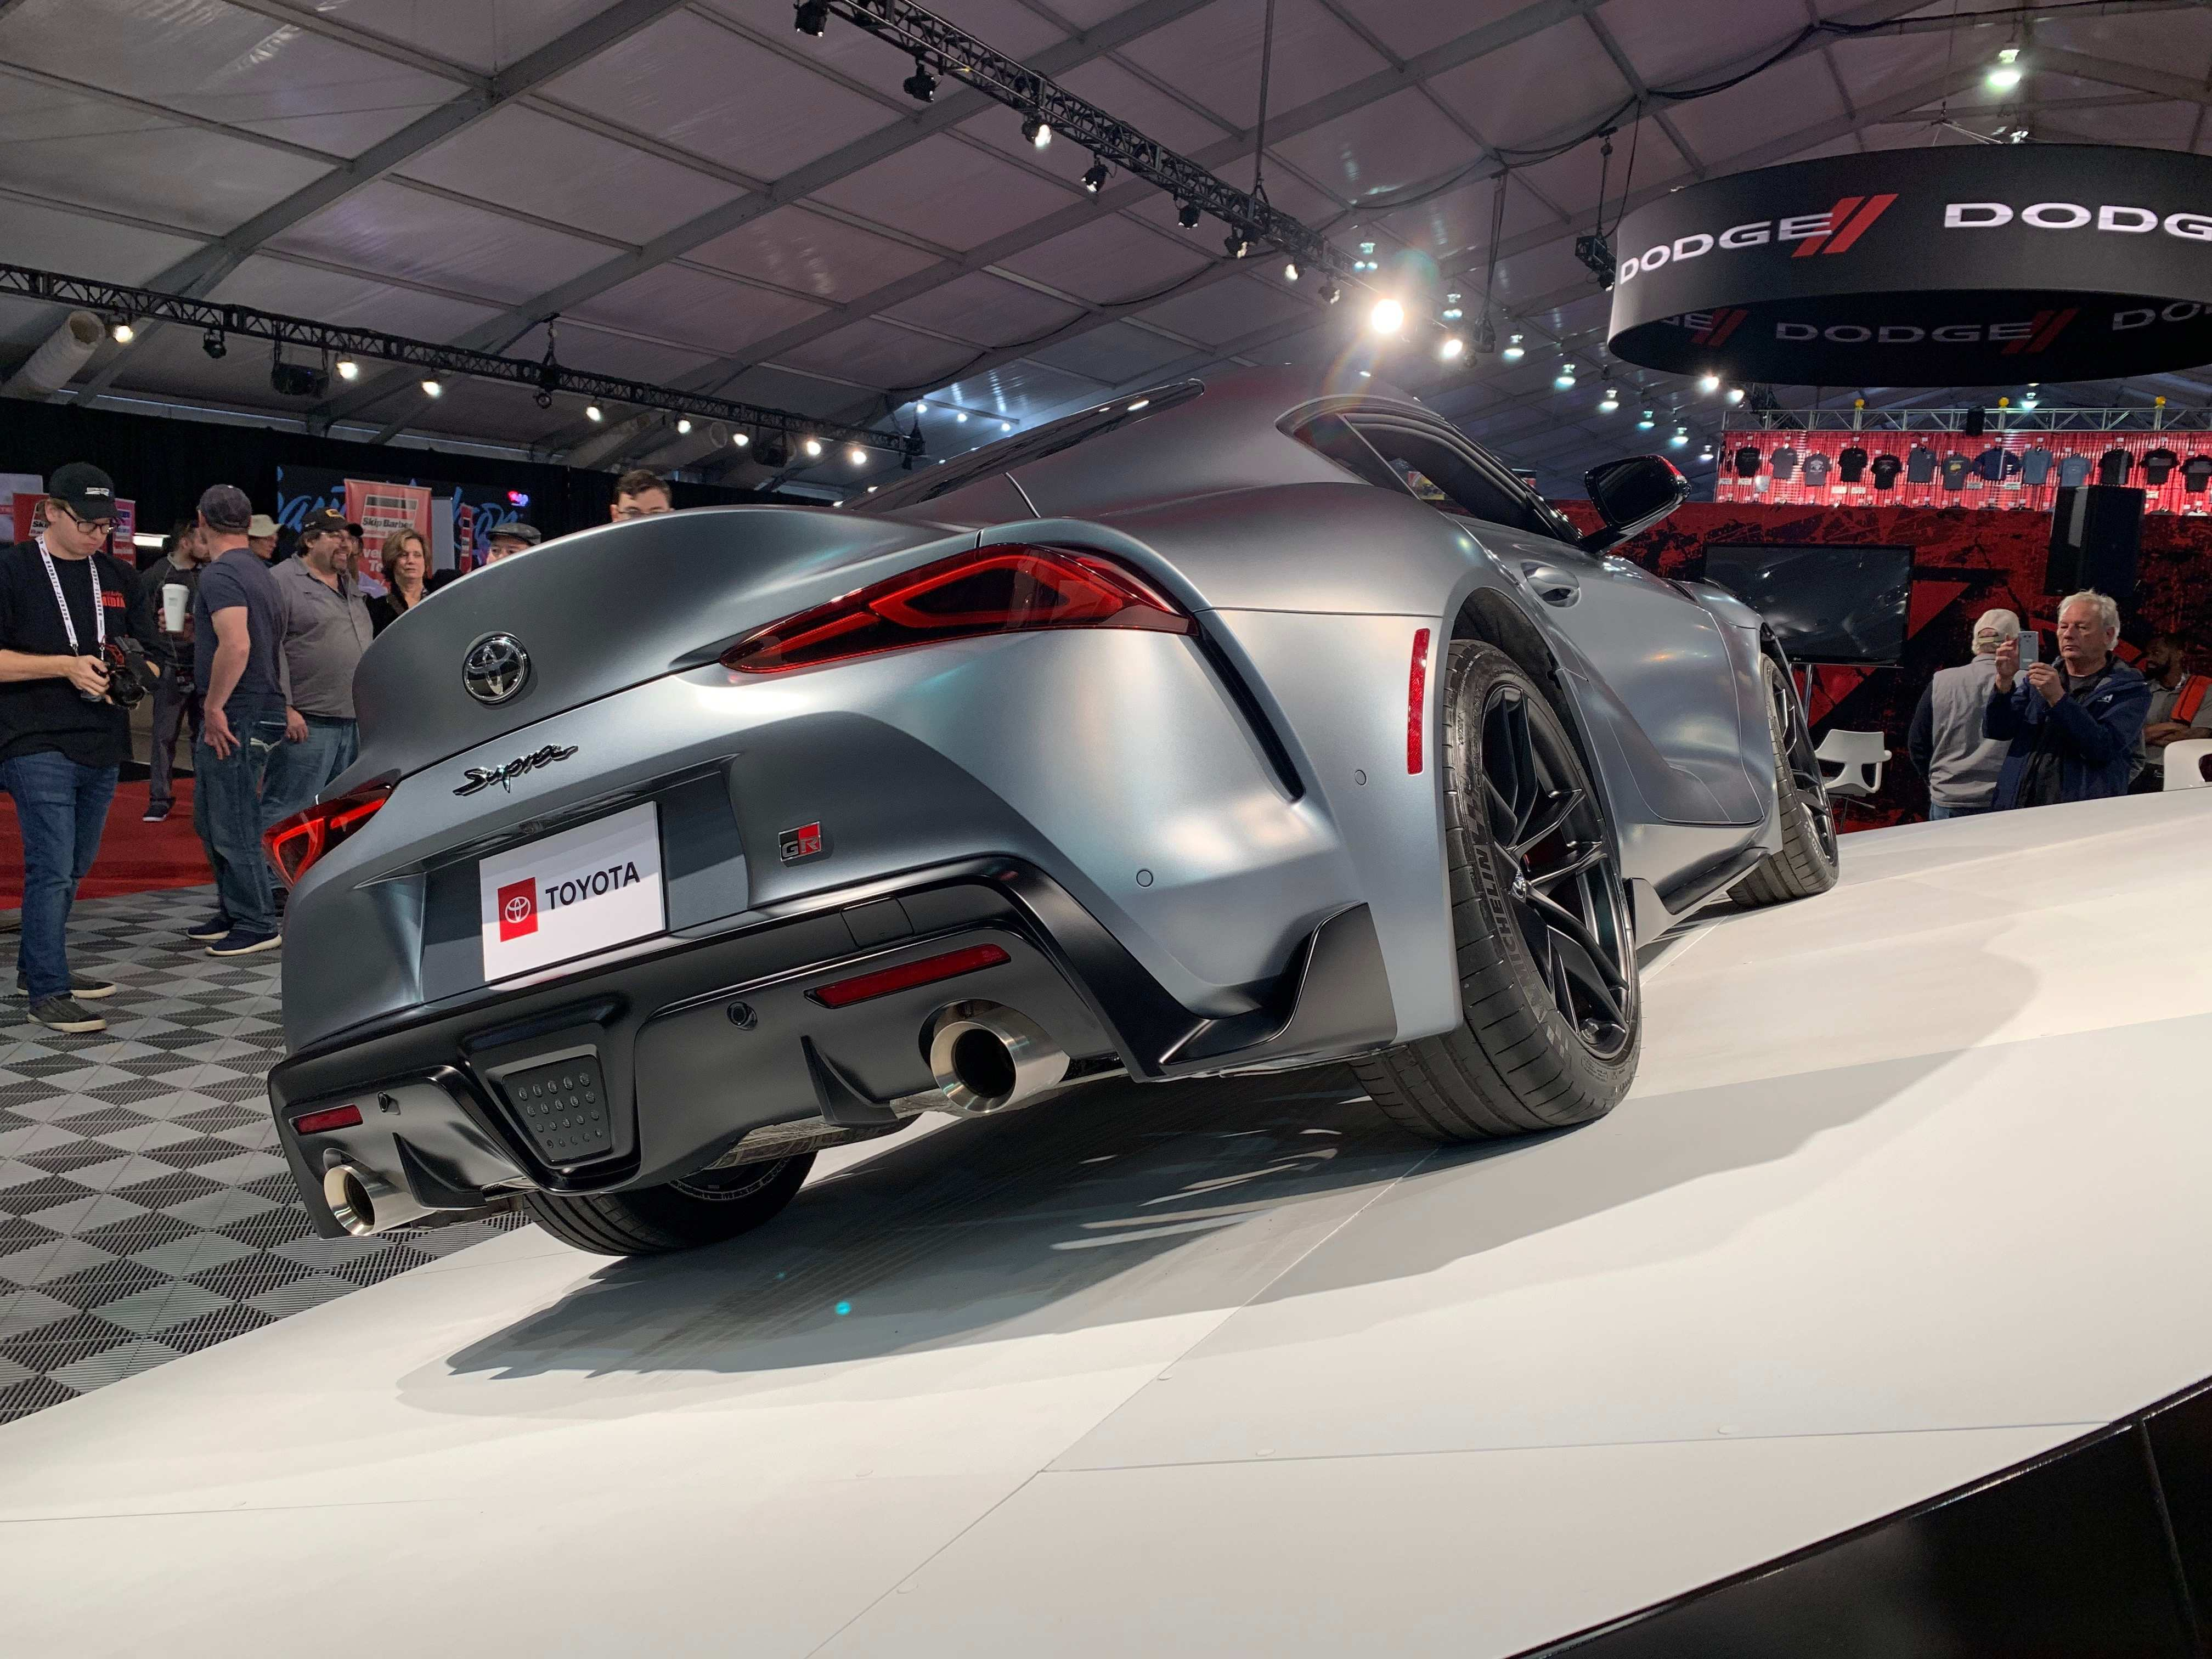 95 Great Who Bought The 2020 Toyota Supra At Barrett Jackson Redesign for Who Bought The 2020 Toyota Supra At Barrett Jackson